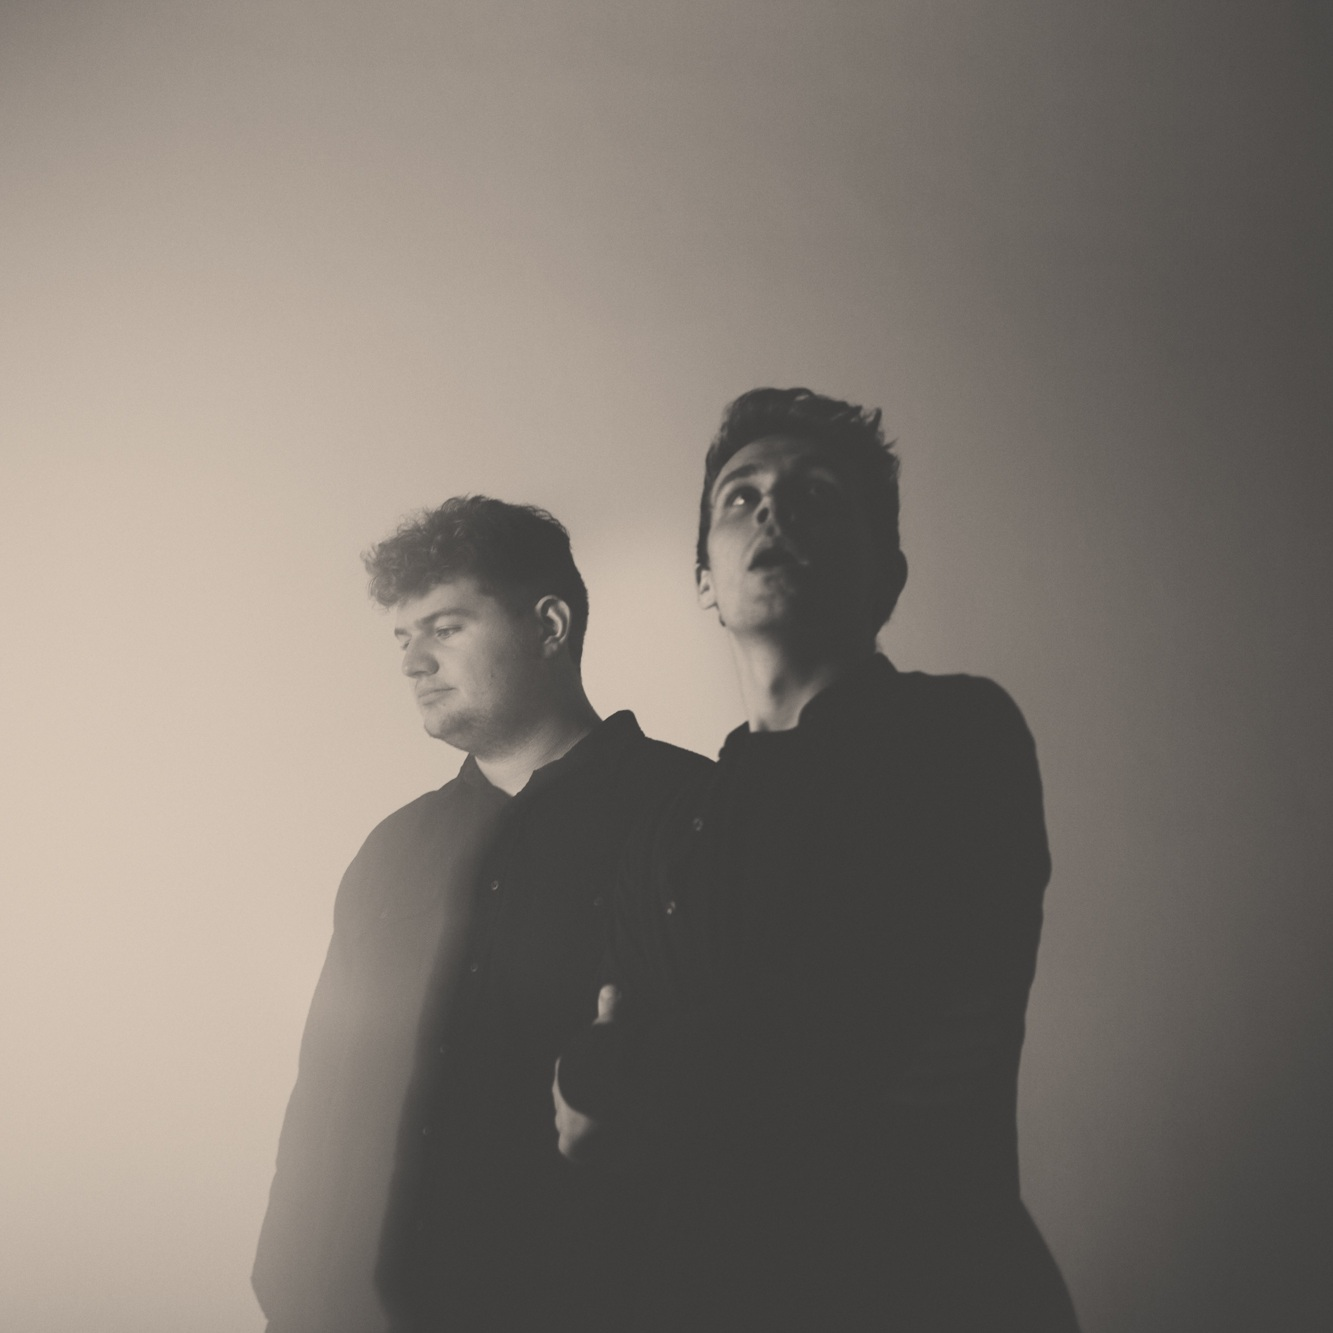 Bondax - Collective Minds booked UK duo, Bondax, for their long awaited debut in Hong Kong for its' maiden party.